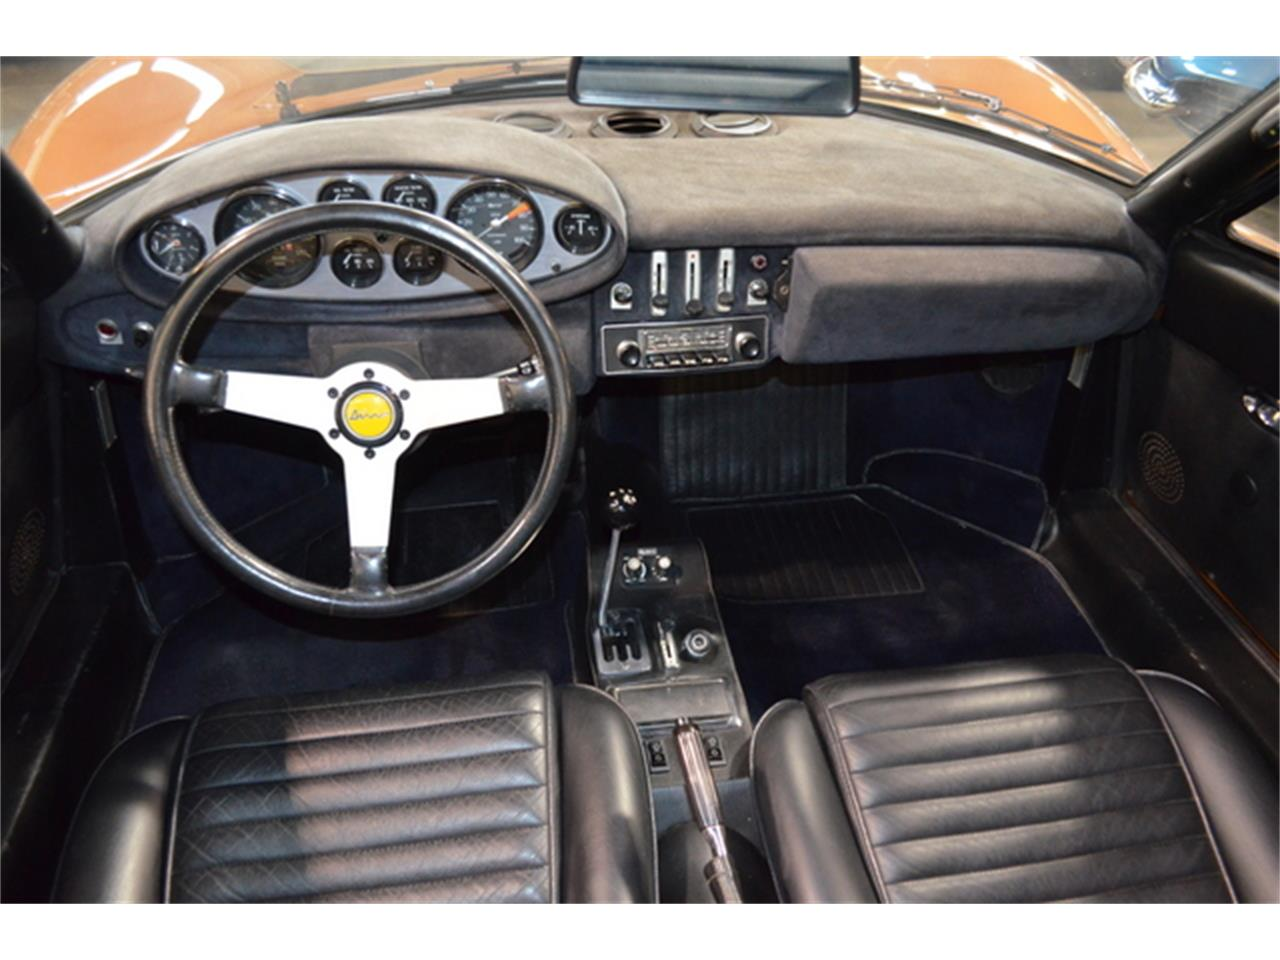 Large Picture of '74 Ferrari Dino located in Huntington Station New York Auction Vehicle - L4HN